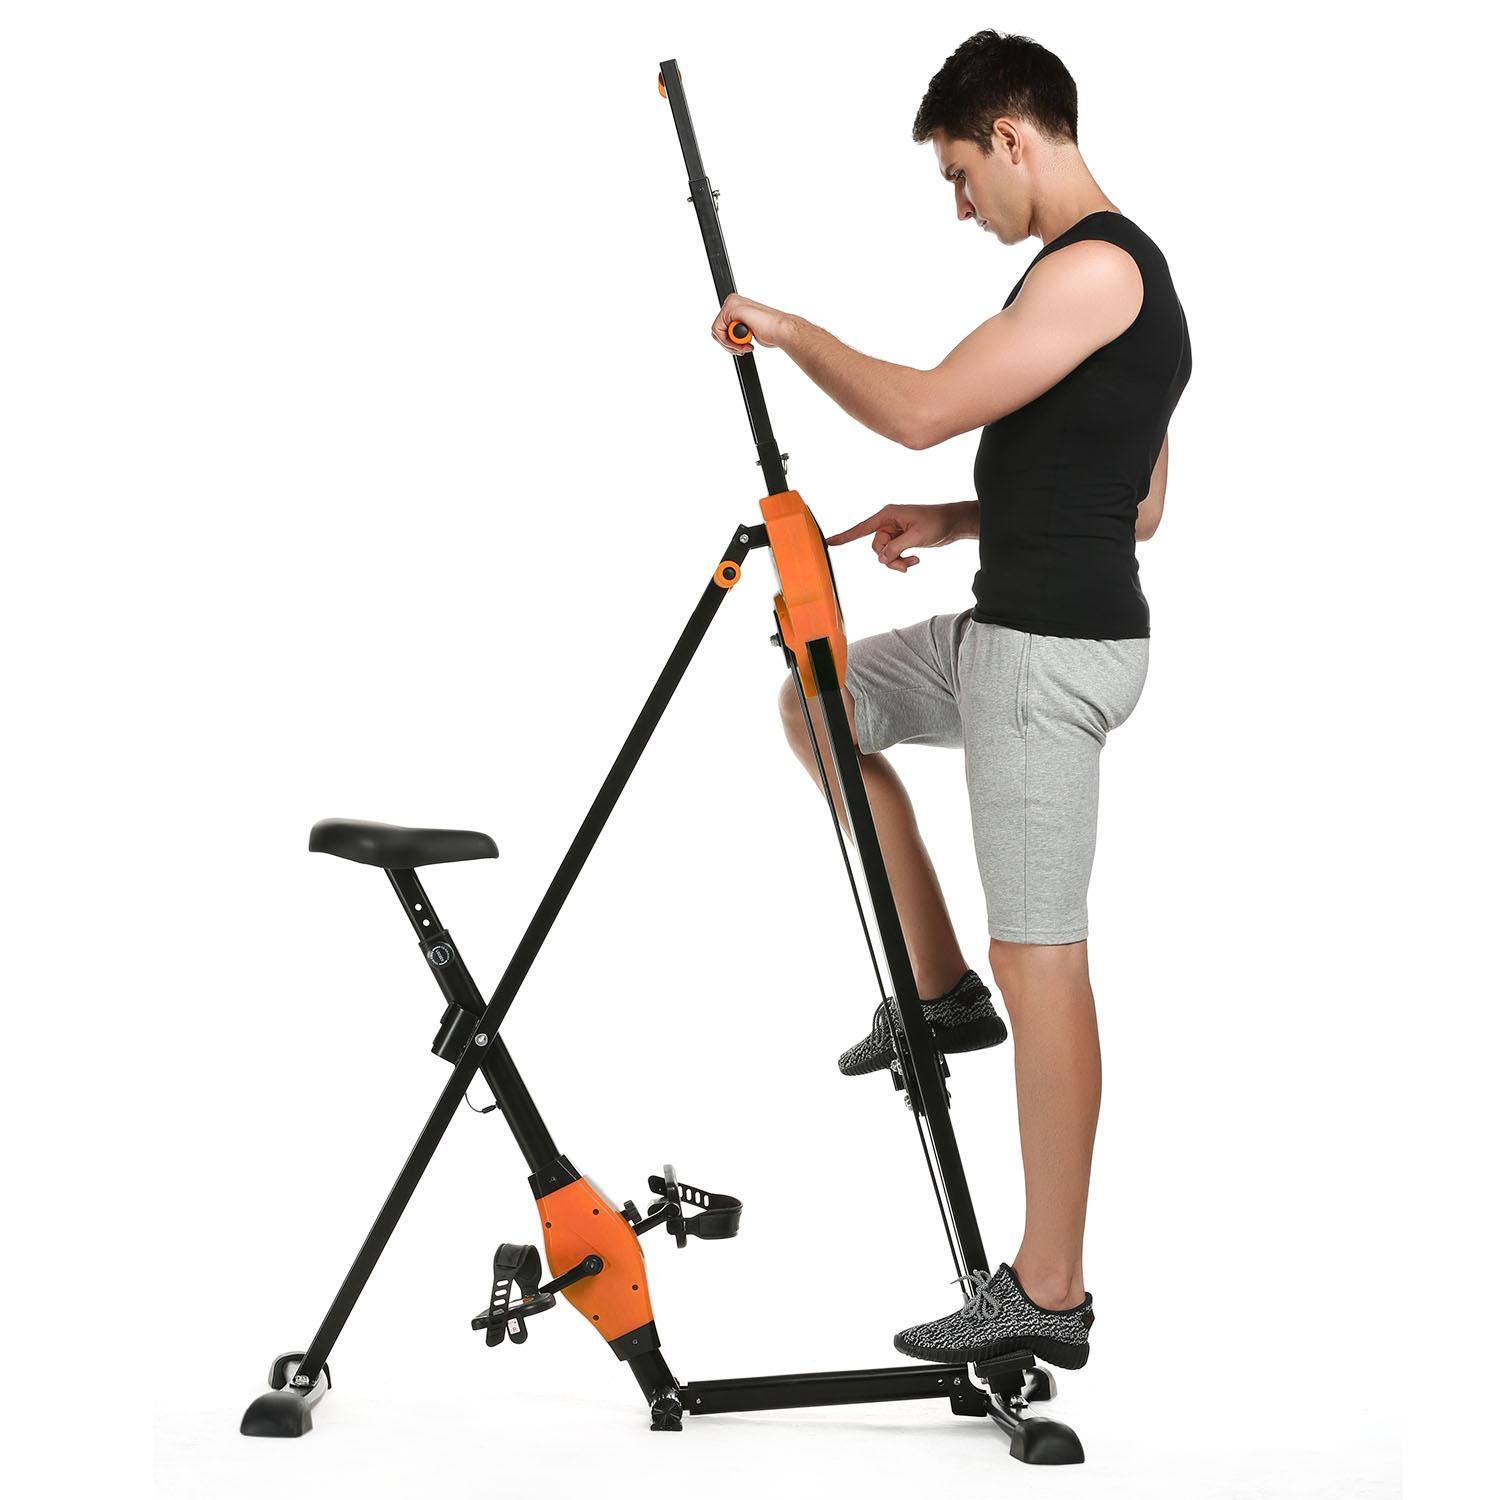 Professional Vertical Climber Total Body Workout - Home Gym Exercise Equipment WLT